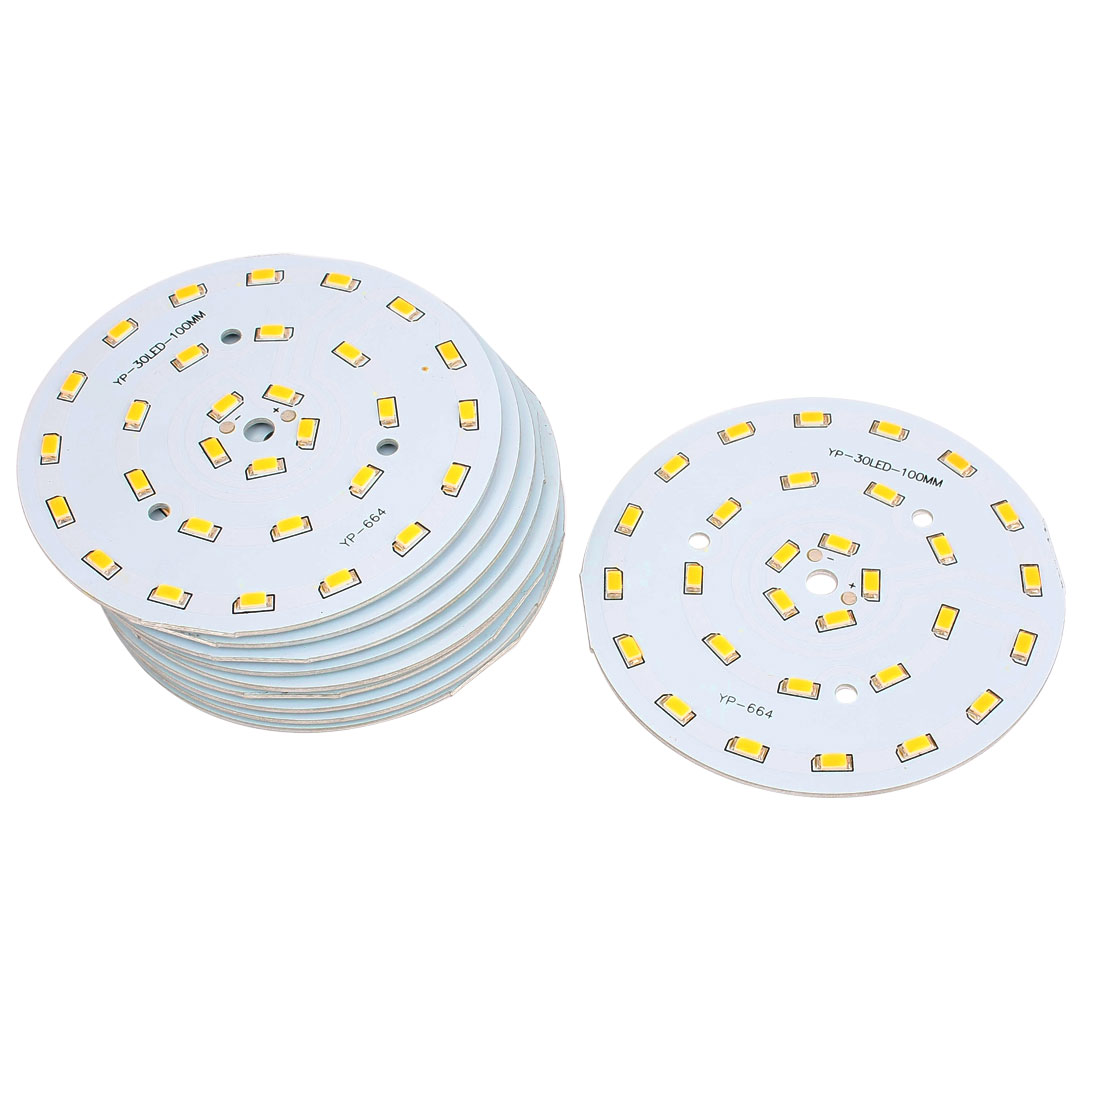 10 Pcs 15W Warm White SMD 5630 30-LED Spotlight Aluminum Base Plate 100mm Dia